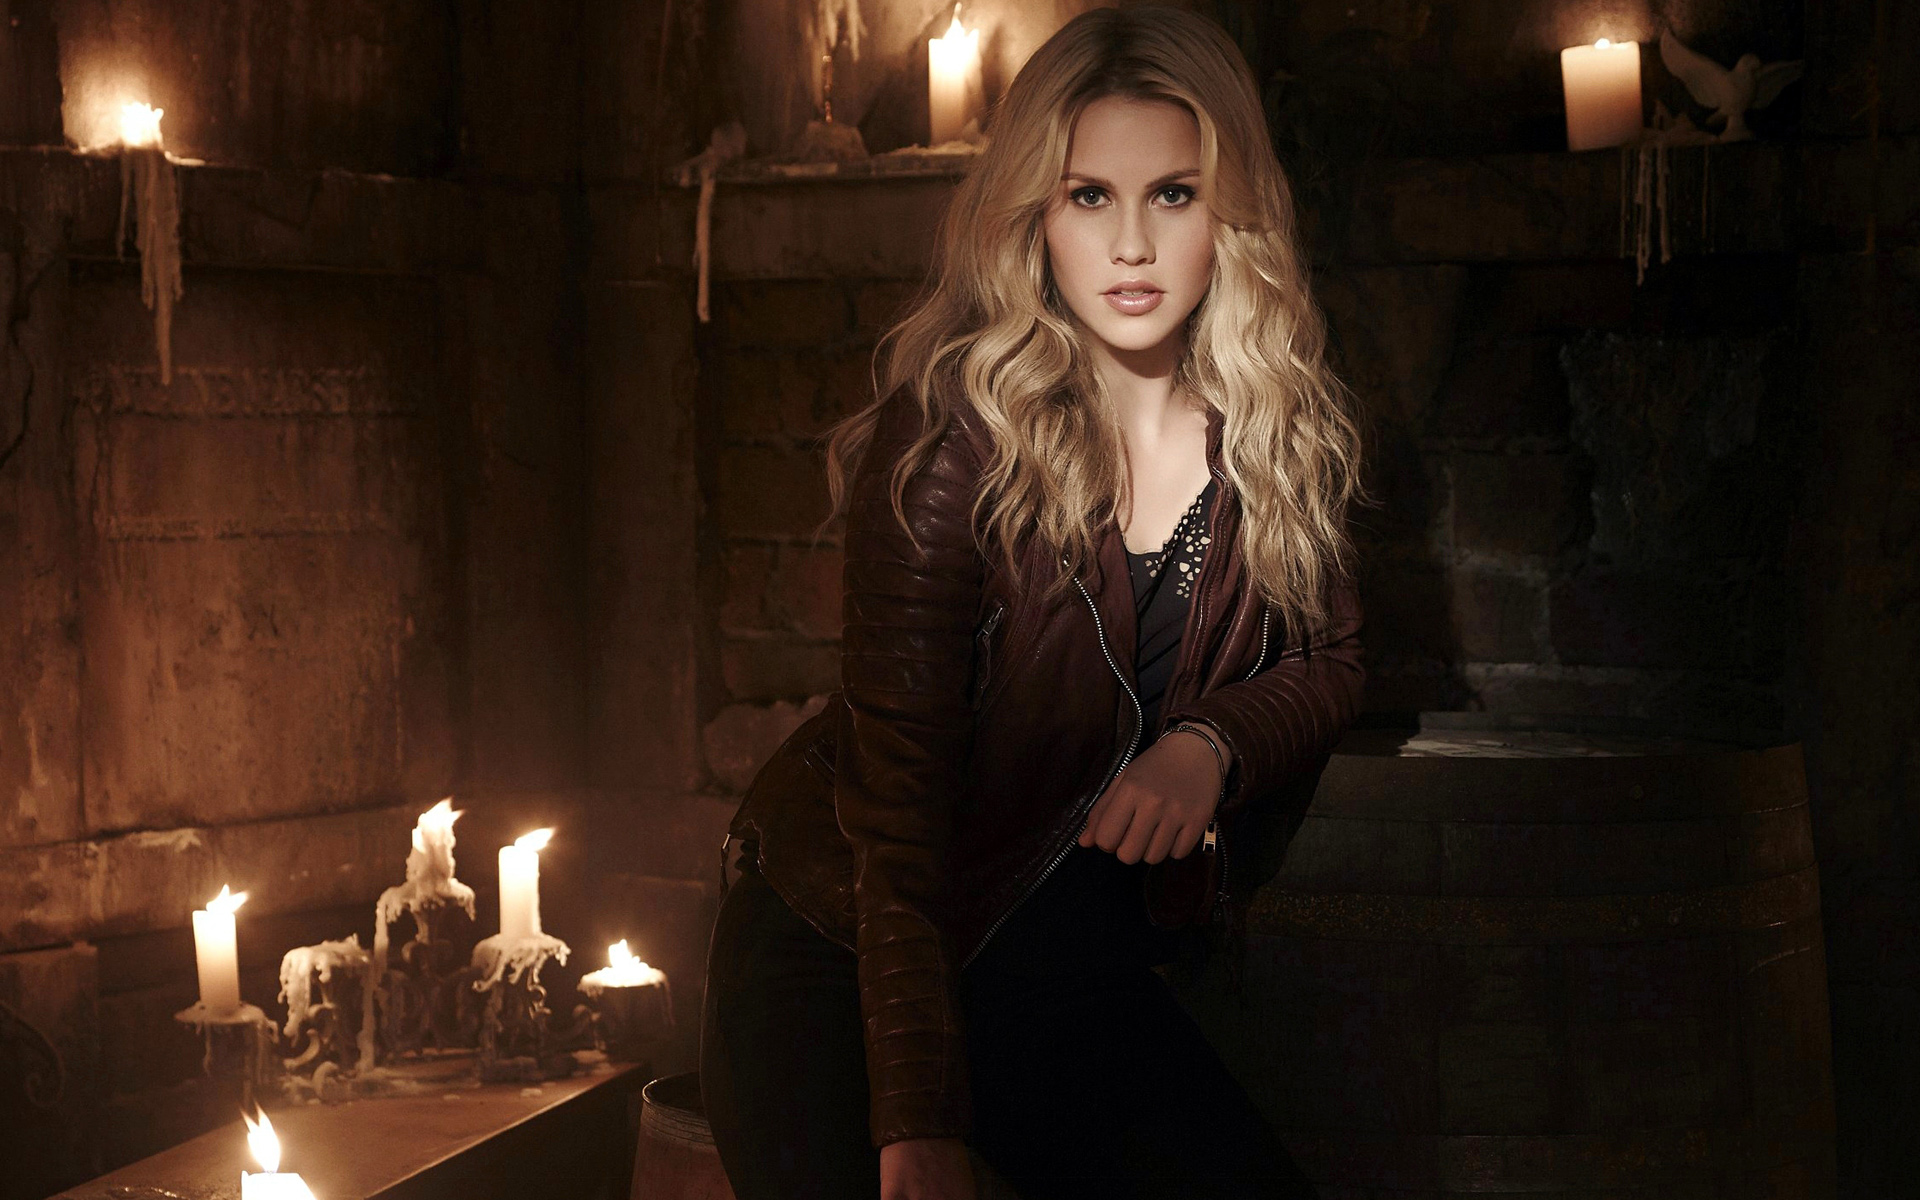 1920x1200 - Claire Holt Wallpapers 3